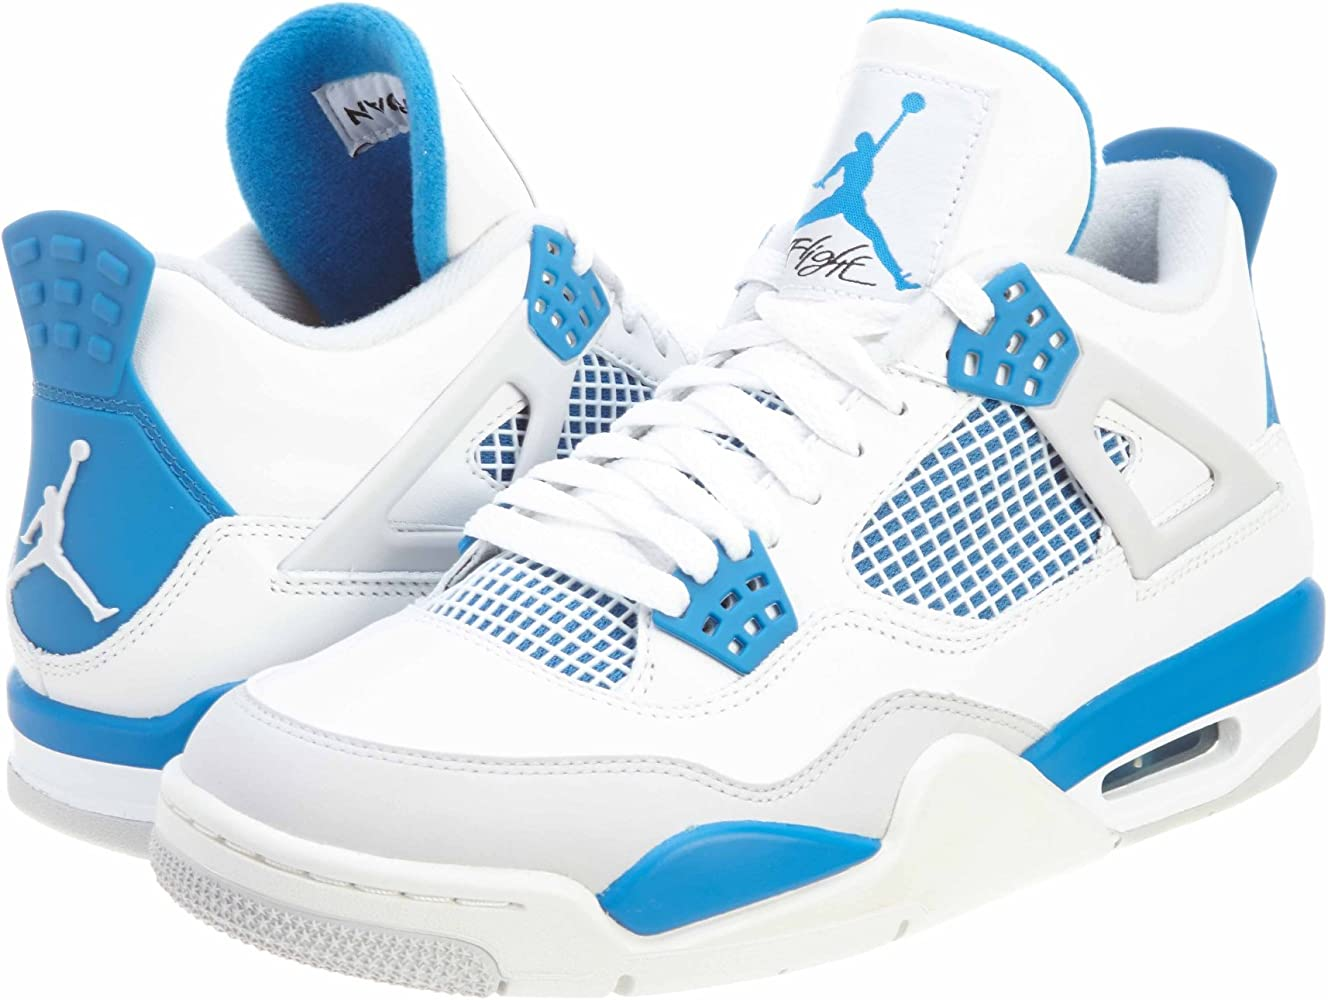 on sale 6aa5f 75579 Air Jordan 4 IV Retro